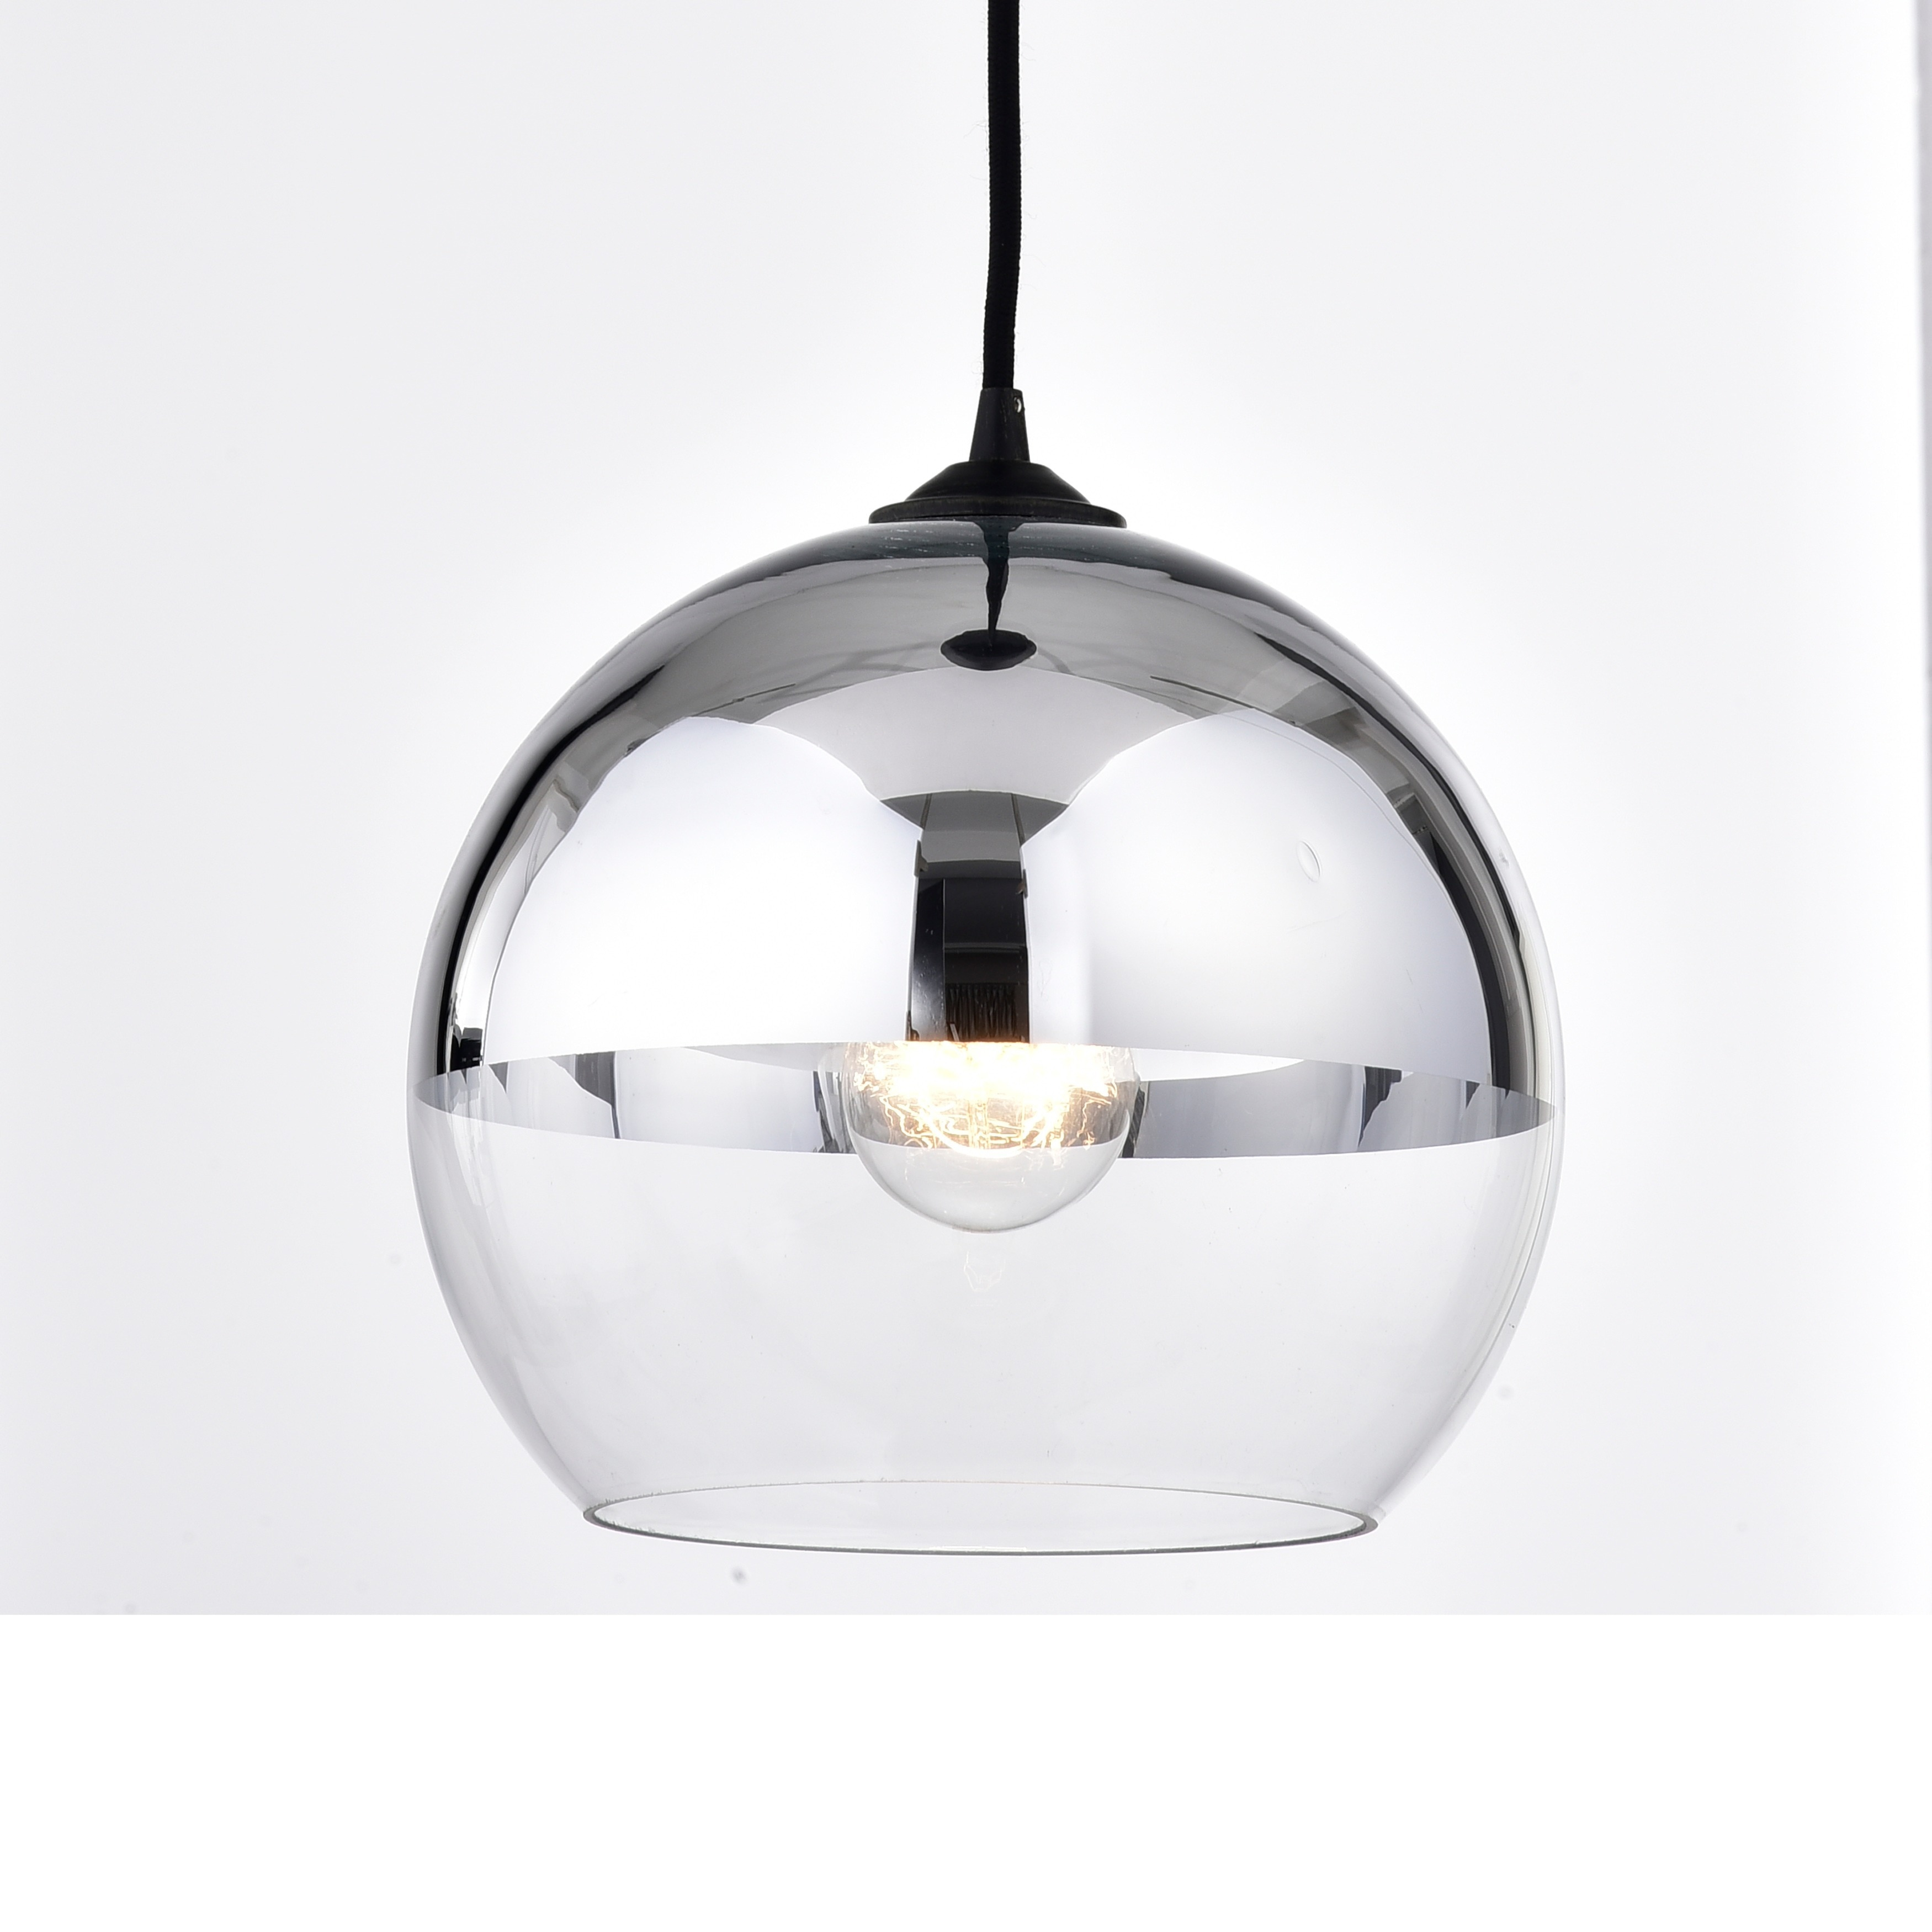 Luna antique black single light chrome finish glass globe pendant luna antique black single light chrome finish glass globe pendant chandelier free shipping on orders over 45 overstock 22467856 aloadofball Image collections